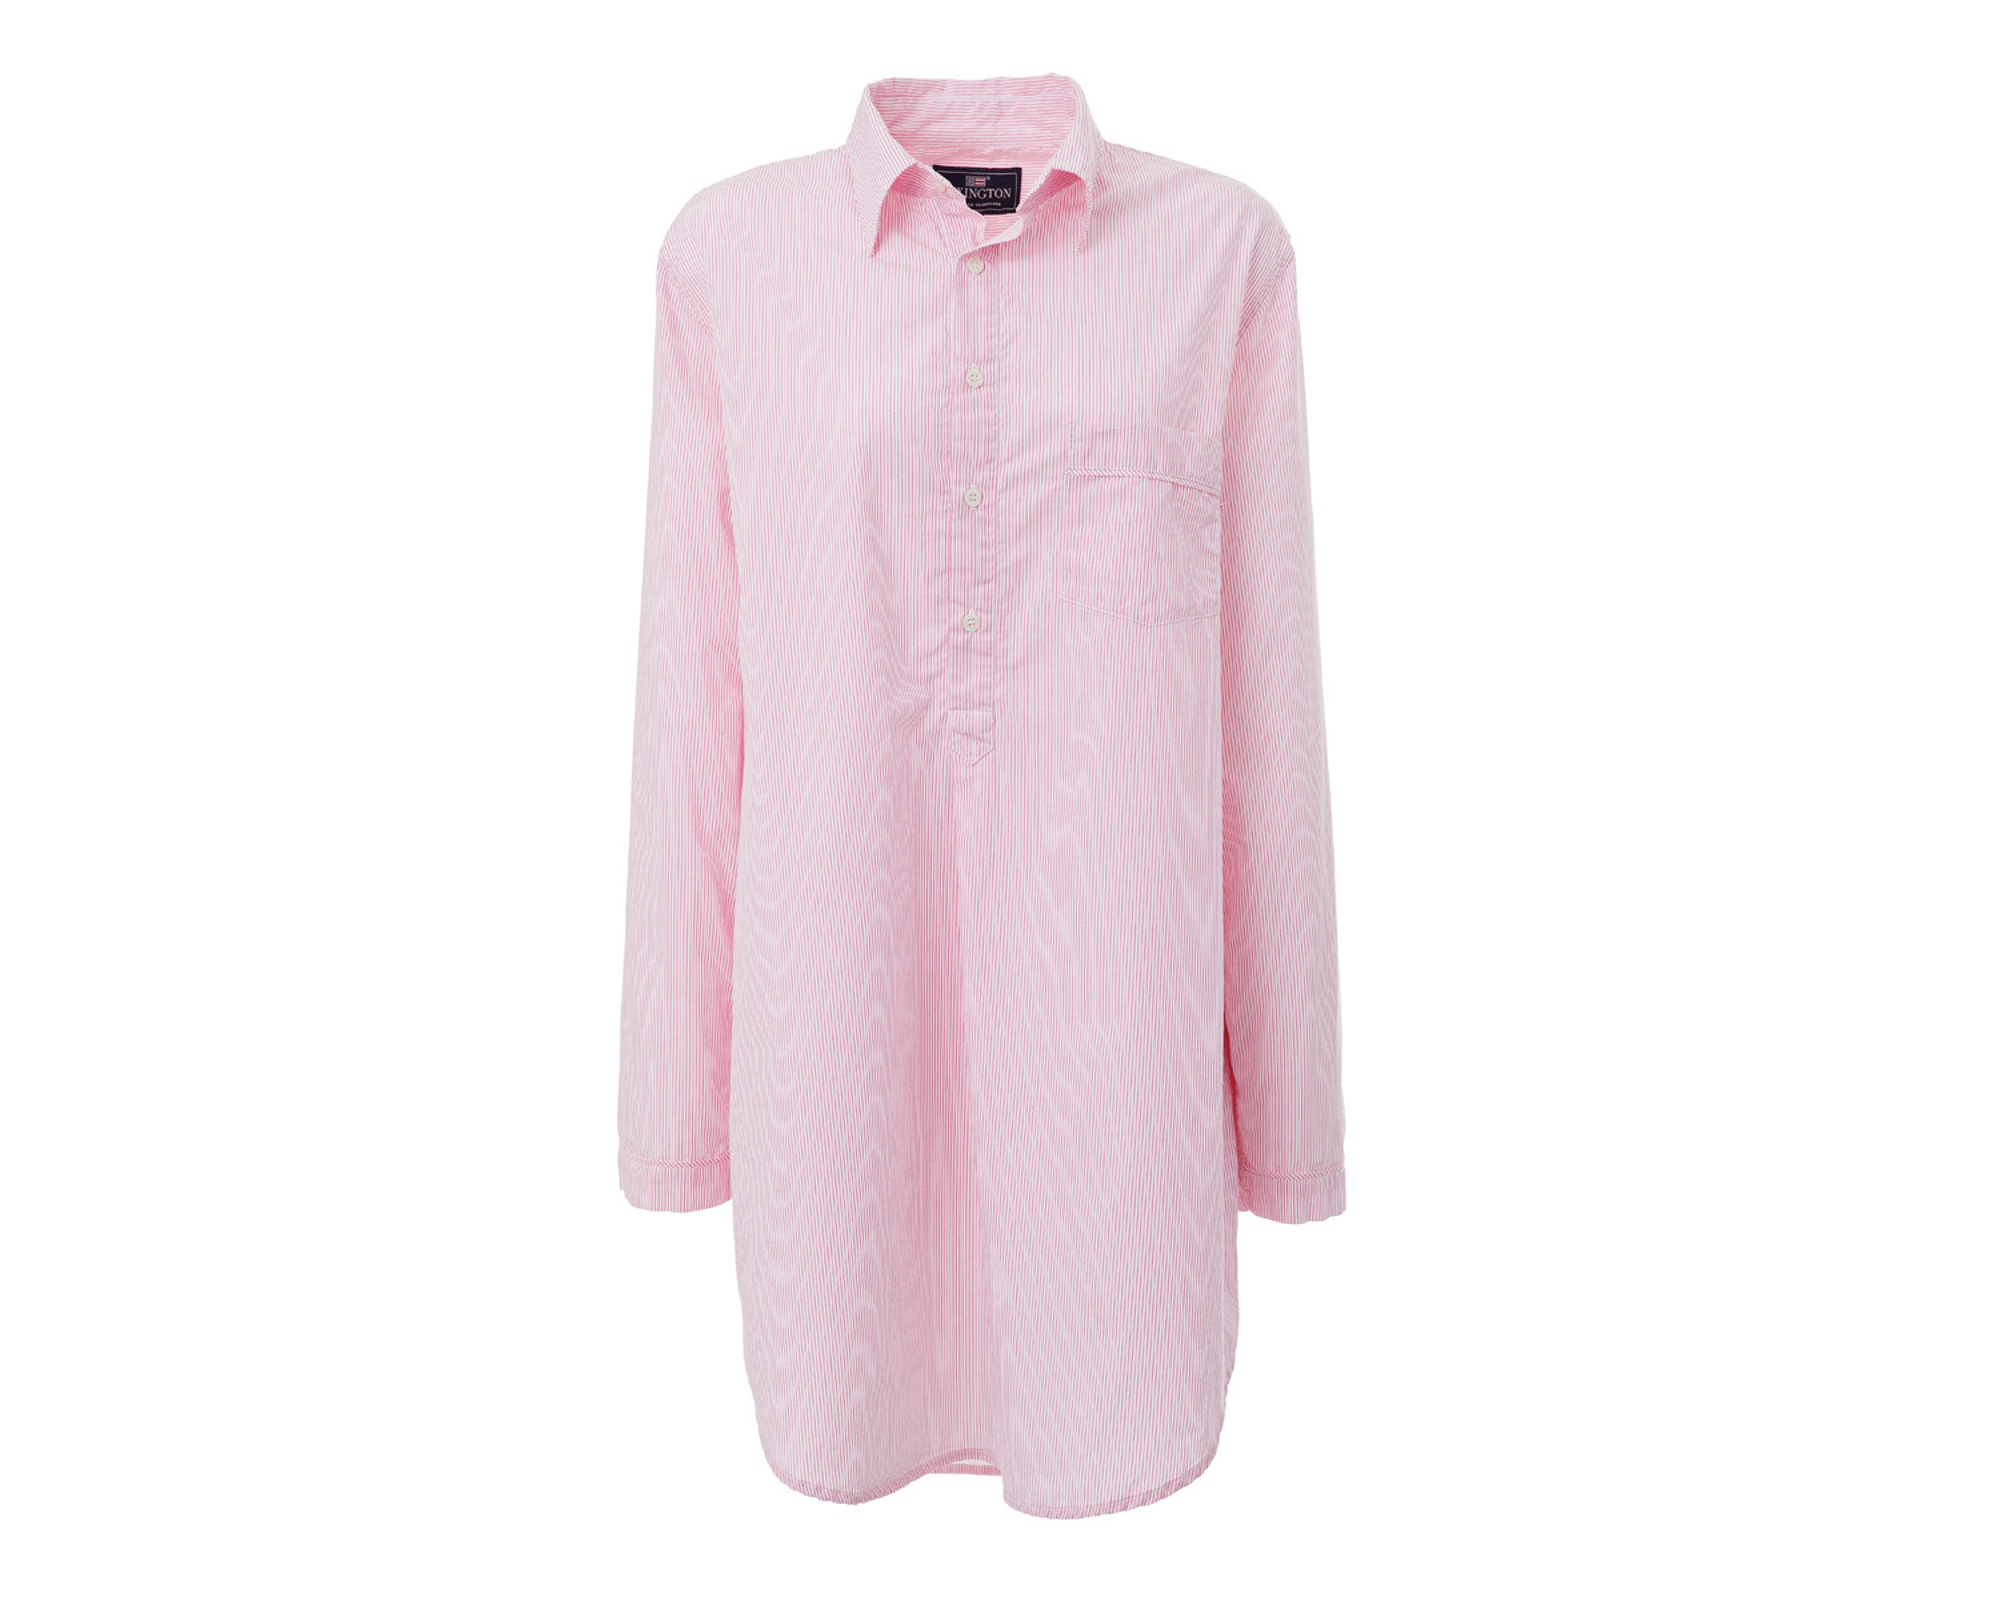 Nightshirt, Pink/White